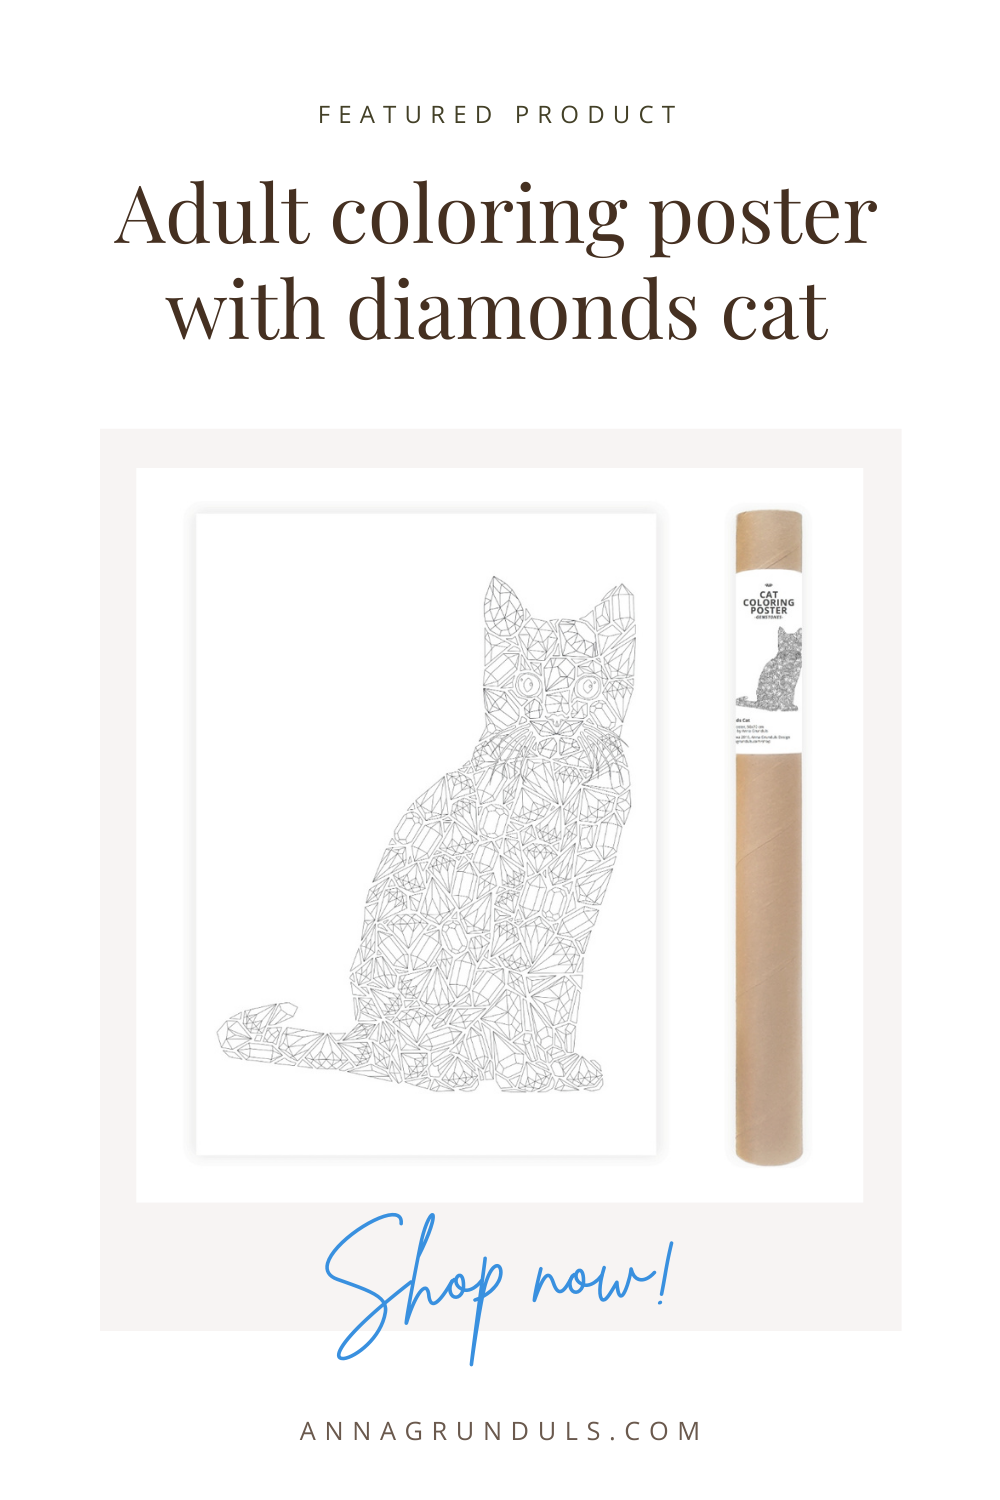 diamonds cat poster for adult coloring pinterest pin